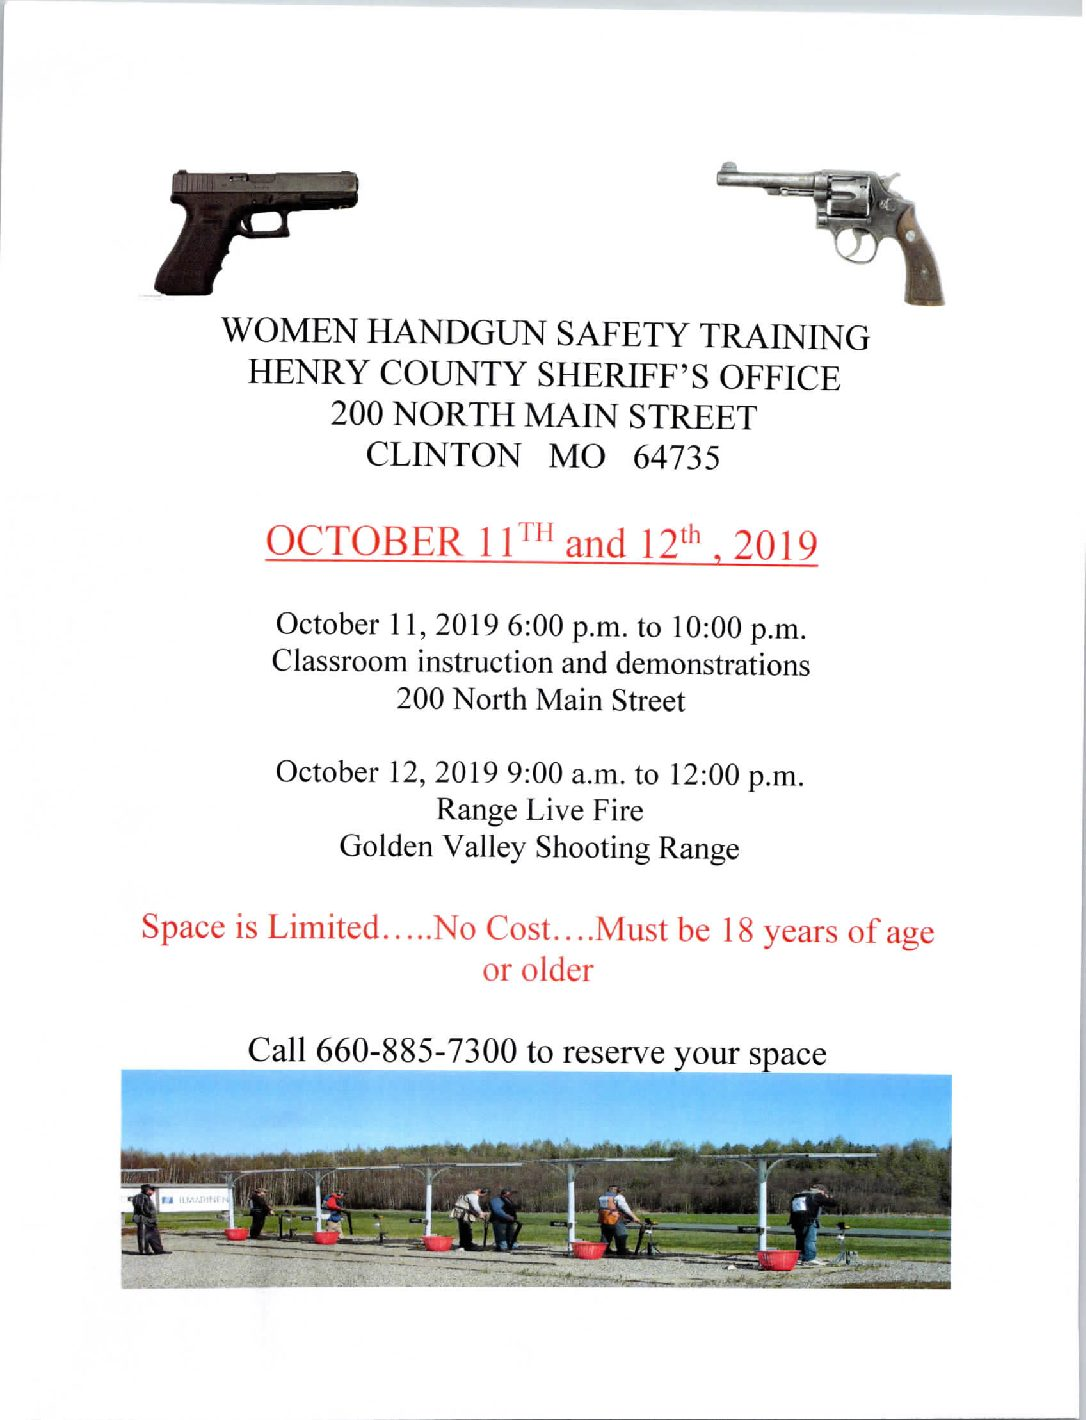 Henry County Sheriff's Office Women's Handgun Safety Clinic